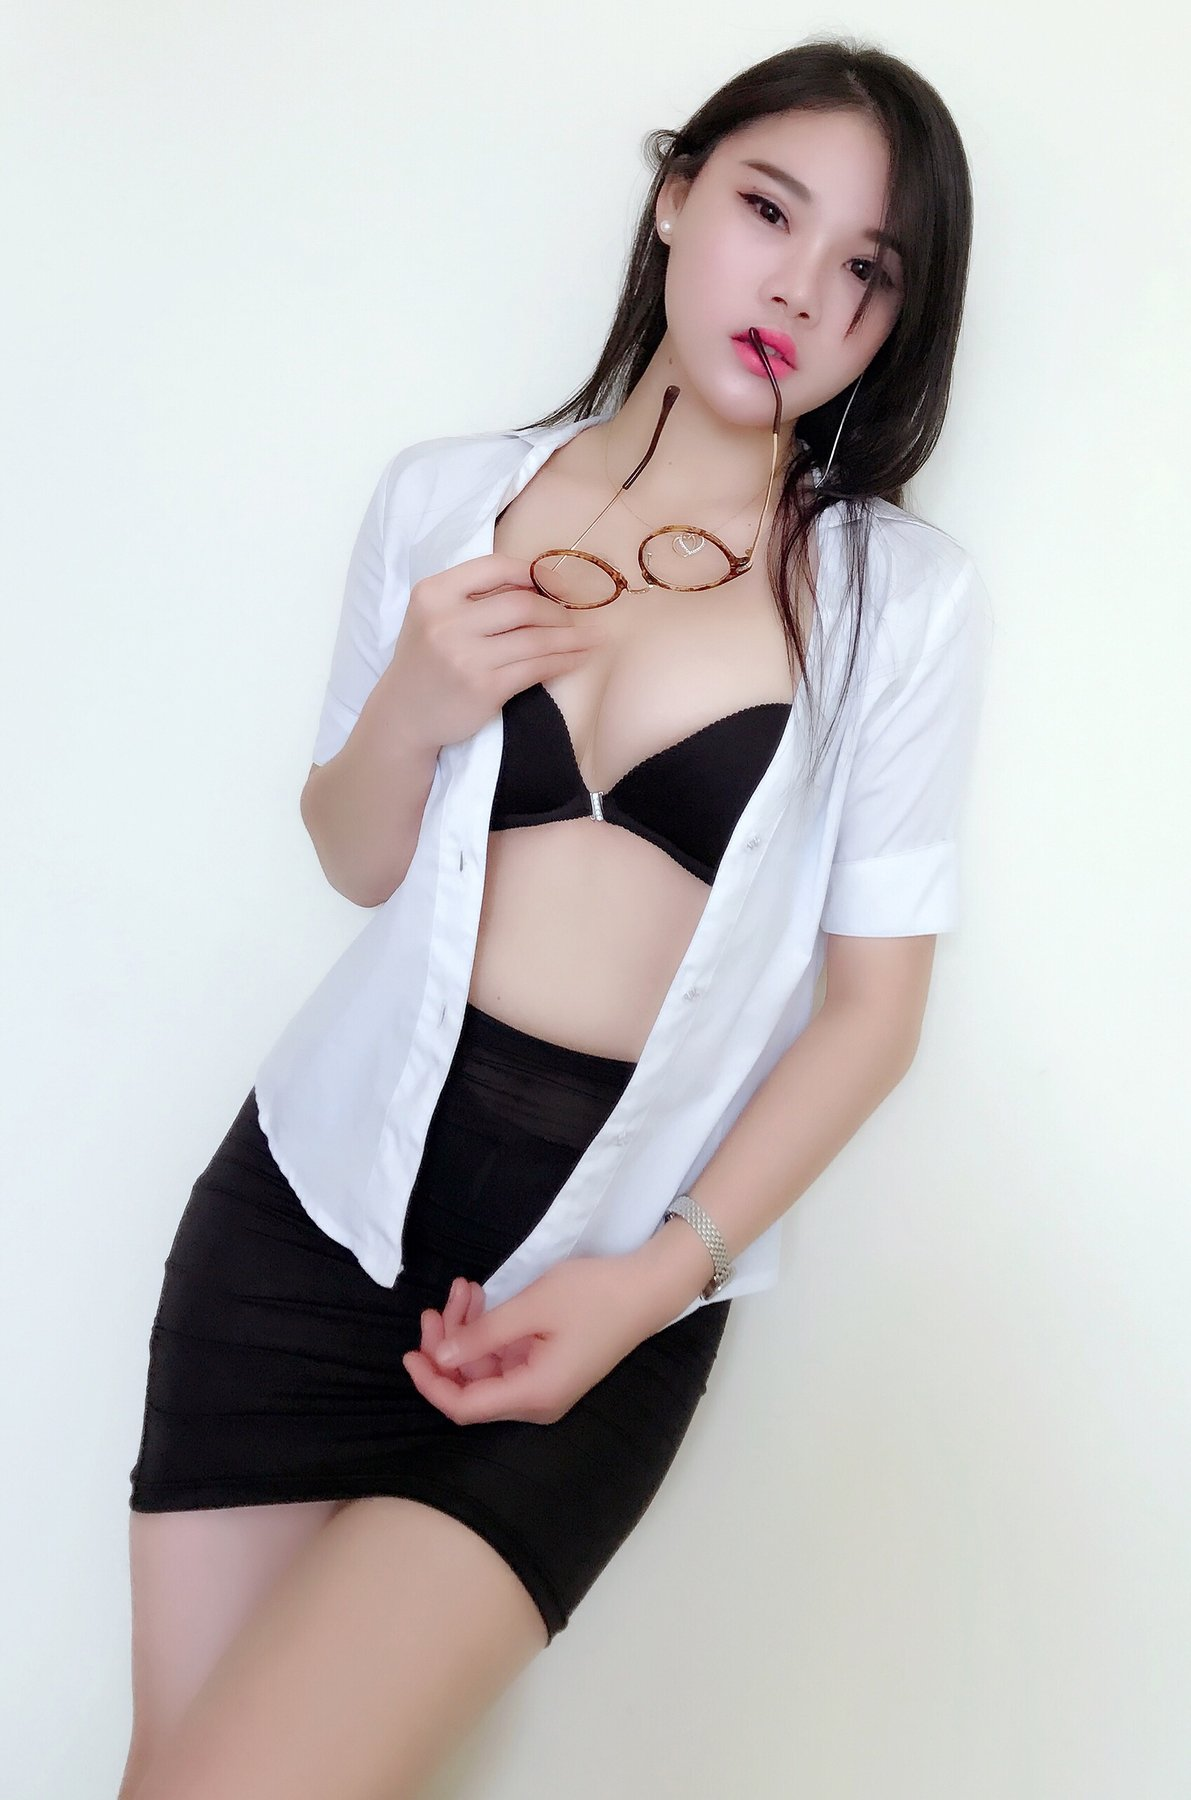 hot girl escort asian escort australia